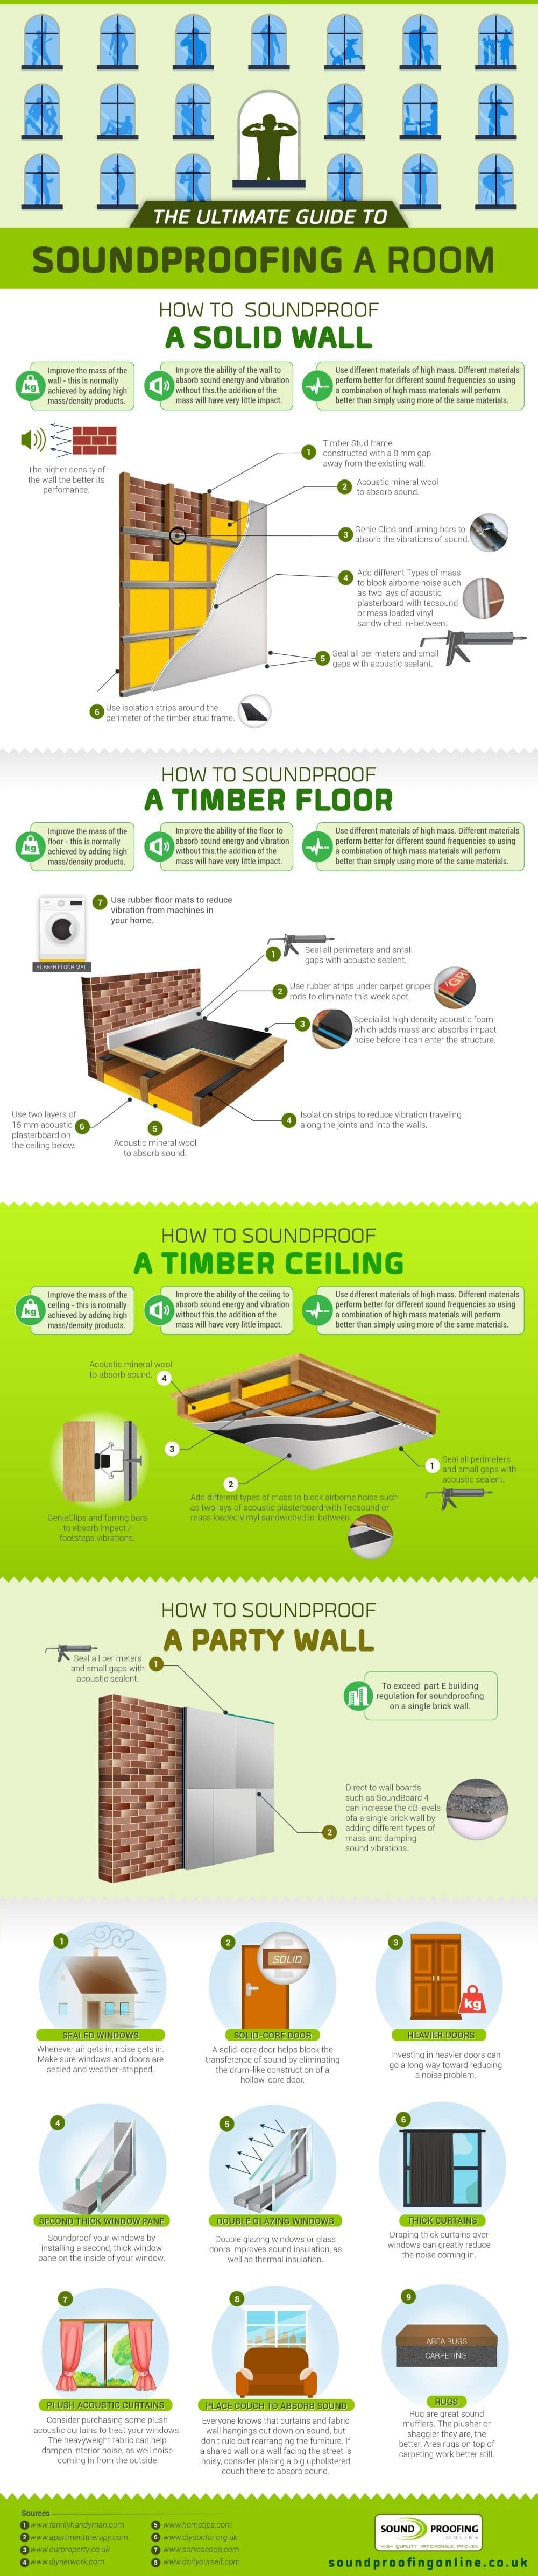 How to Soundproof a Room (Infographic)